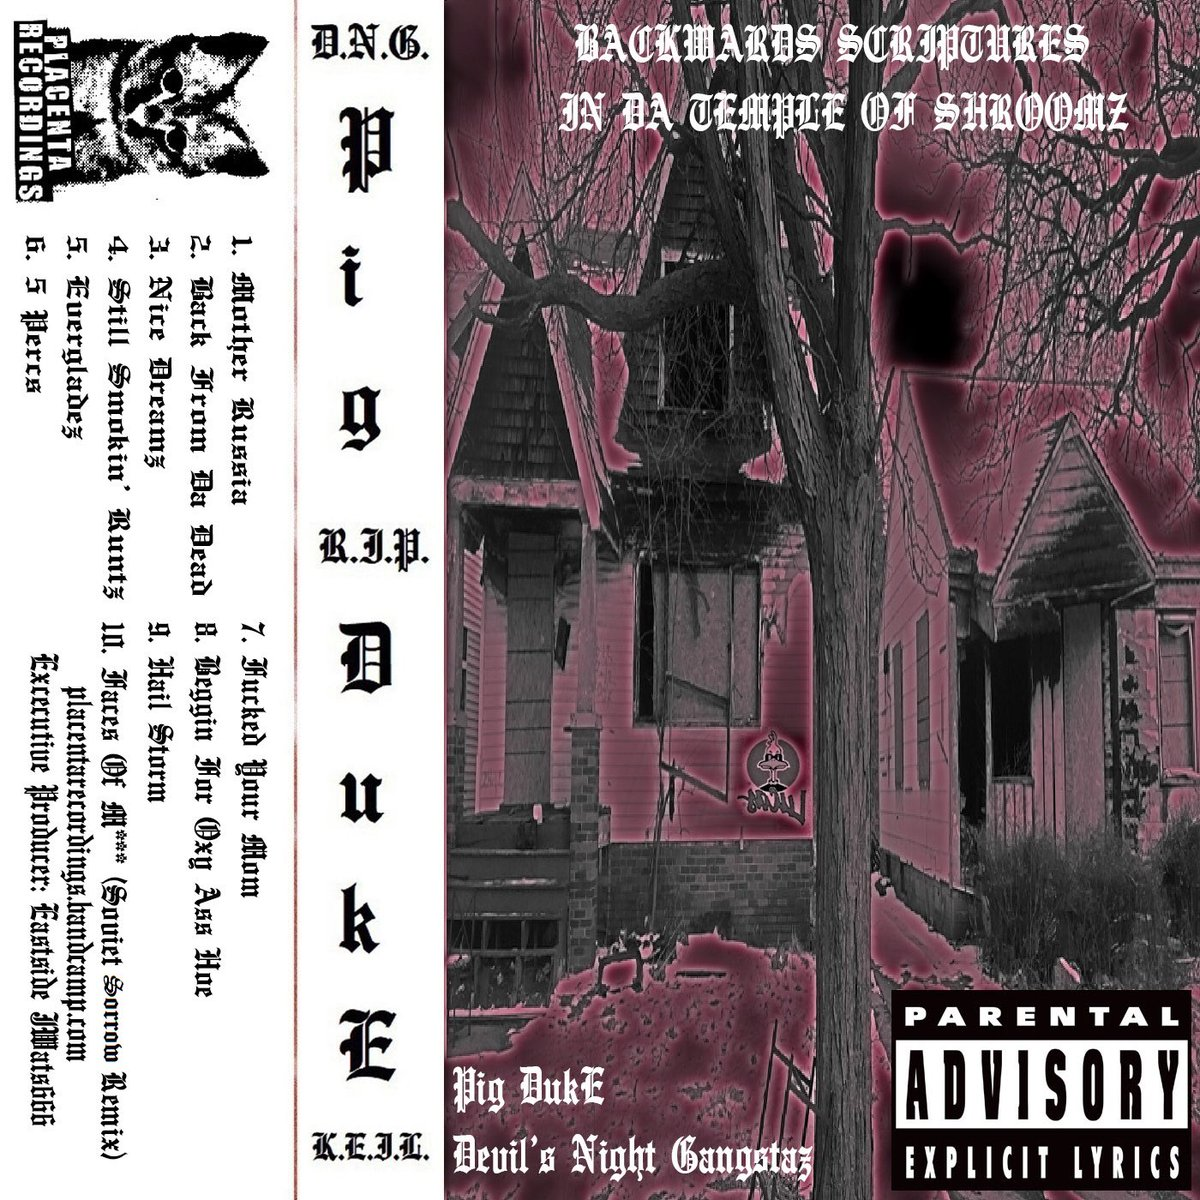 "Pig DukE ""Backwards Scriptures In Da Temple Of Shroomz"" out now on CD/digital via Placenta Recordings. Tapes after quarantine! Listen/download/order a copy today at  😼🍄🏚 #PigDukE #DNG #PlacentaRecordings #DetroitRap #Horrorcore #Comedy #Vaporwave #Noise"